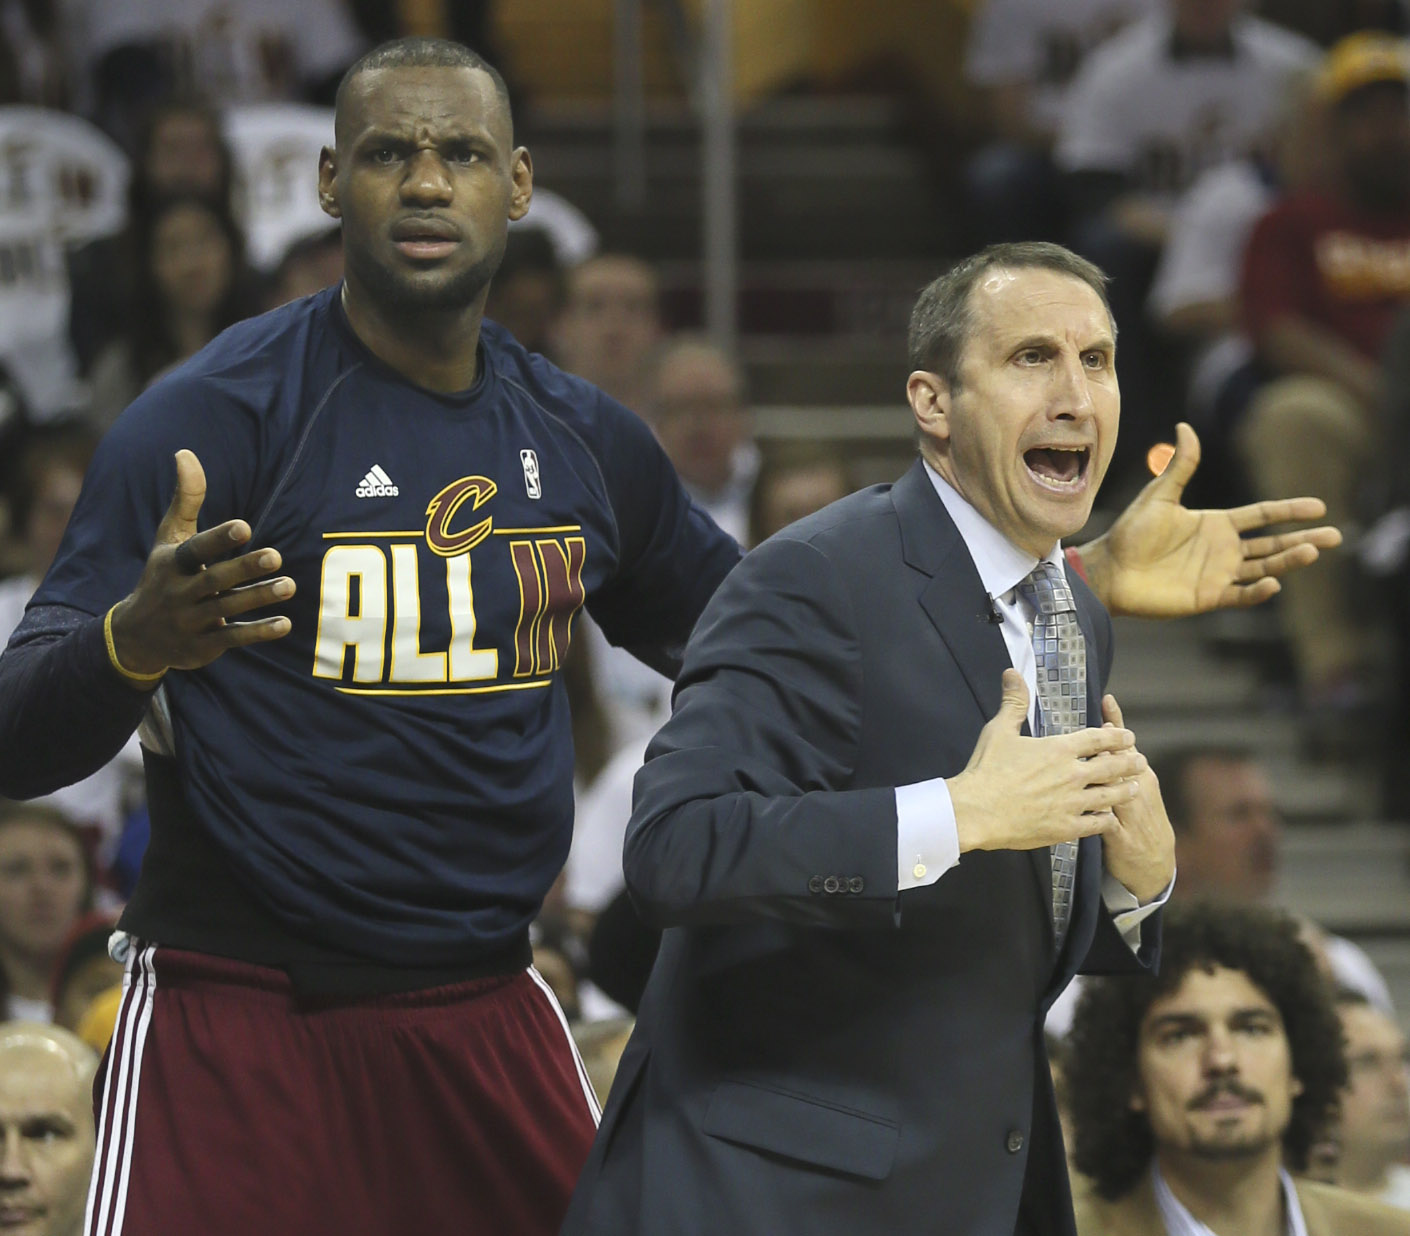 Cleveland Cavaliers' LeBron James and head coach David Blatt question an official's call during the first quarter on Sunday, April 19, 2015, at Quicken Loans Arena in Cleveland, Ohio. Credit: Courtesy of TNS